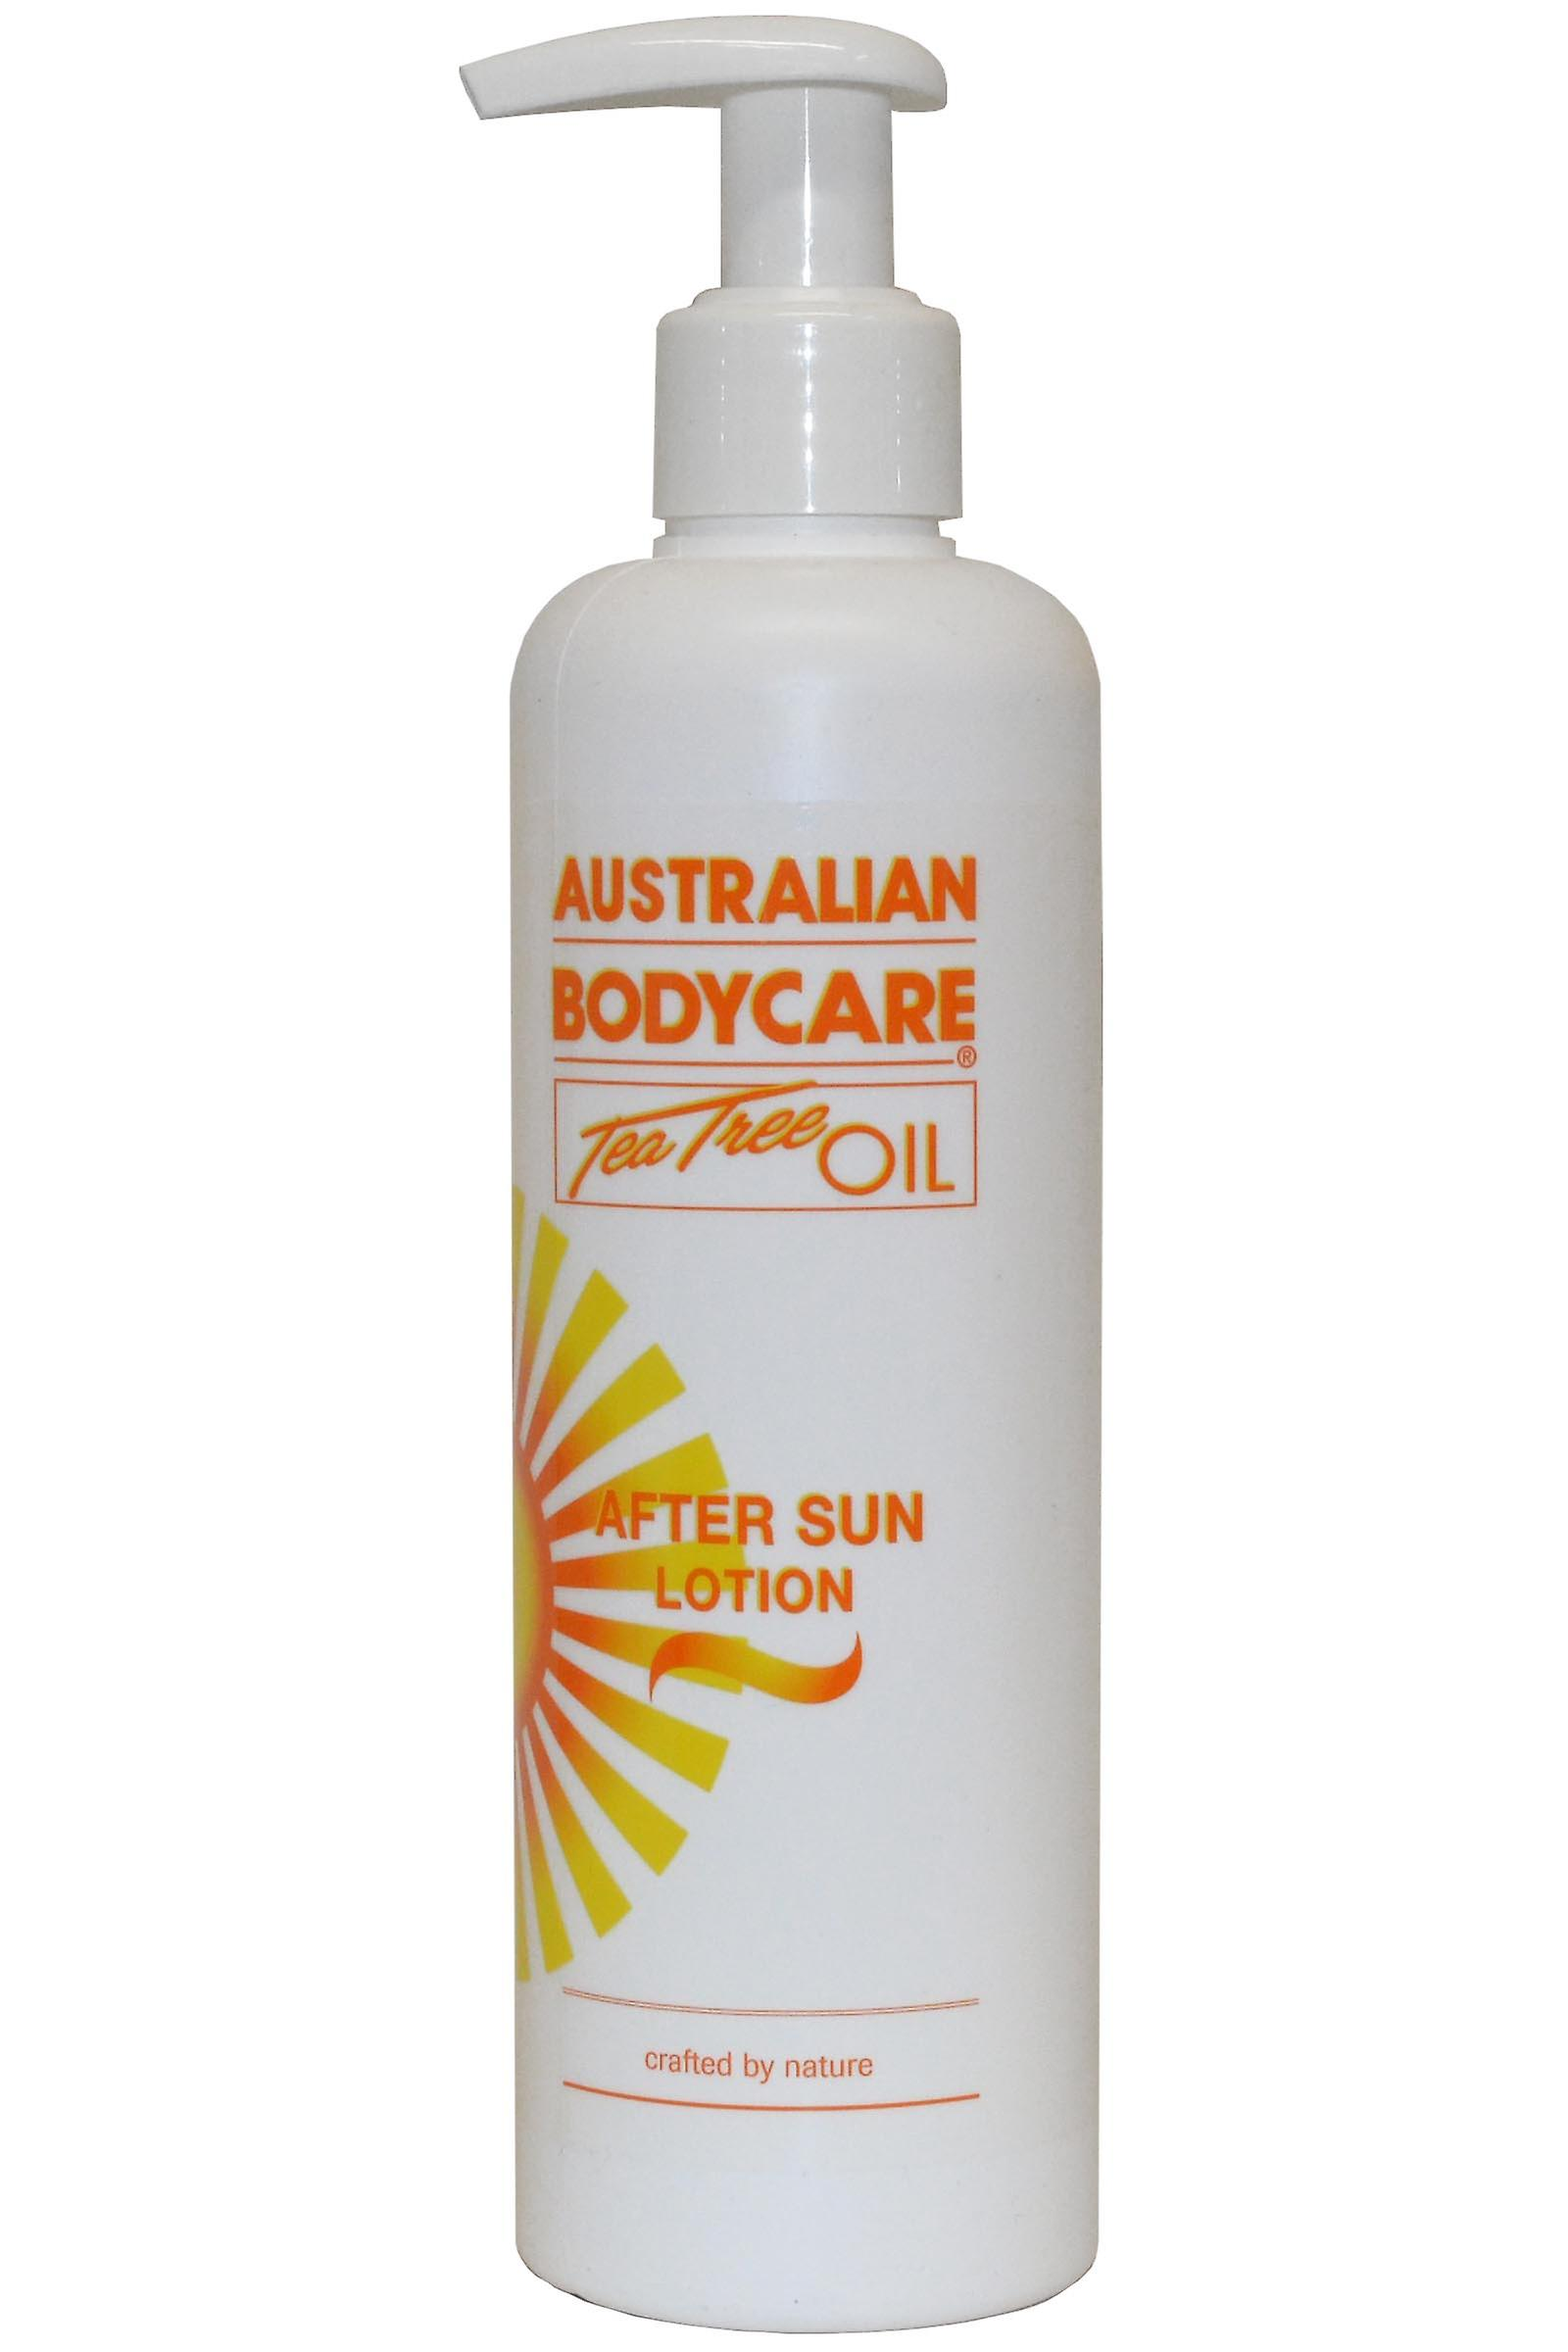 Australian Bodycare After Sun Lotion 250ml made with Tea Tree Oil